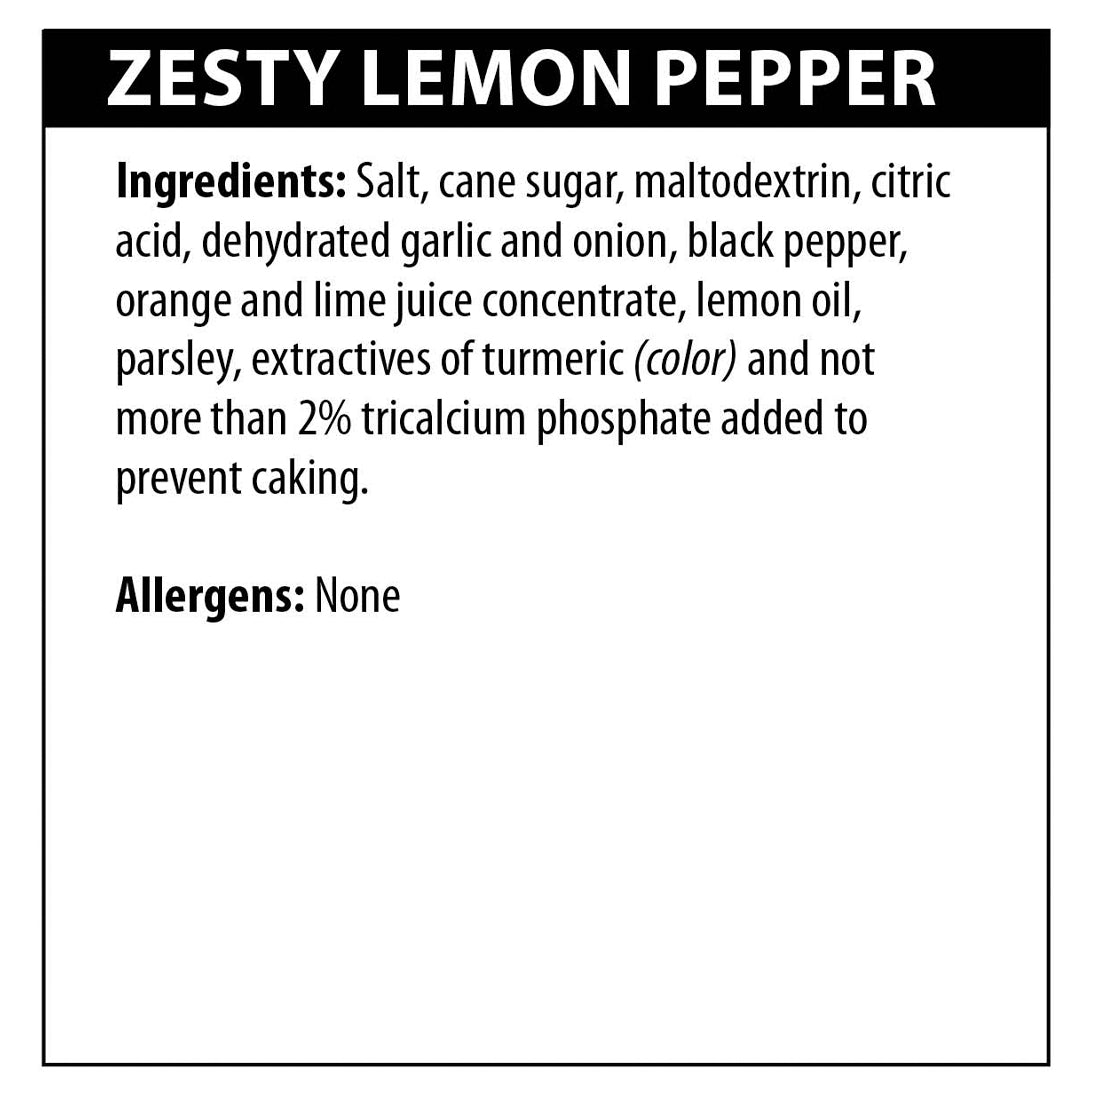 Zesty Lemon Pepper Seasoning Ingredients